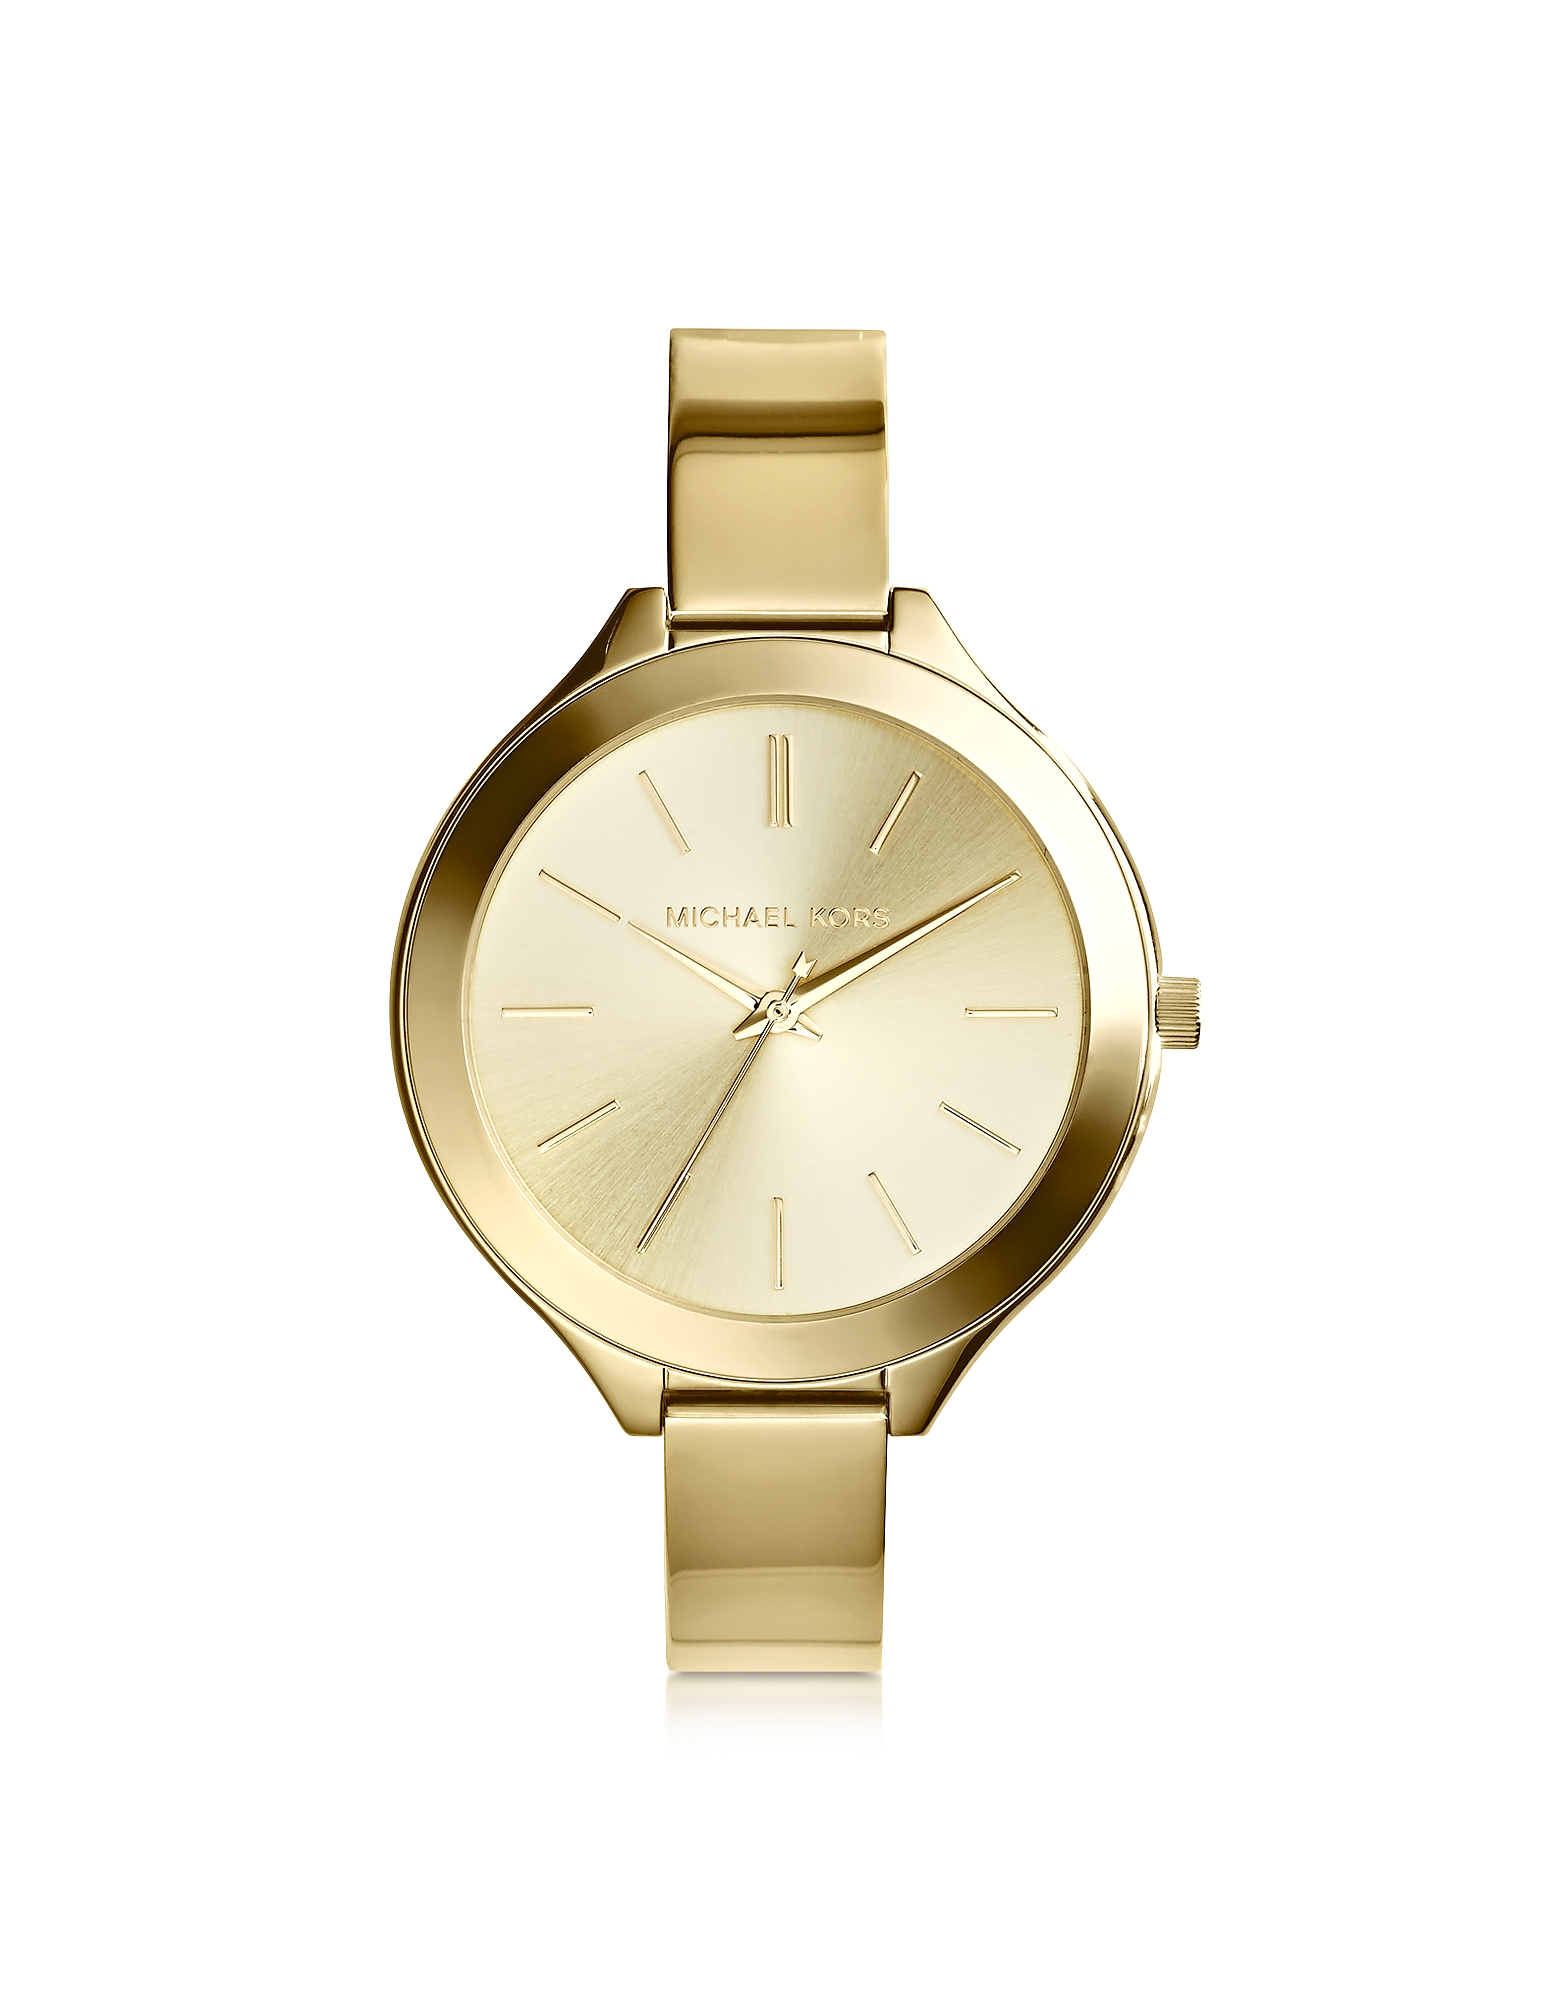 Michael Kors Women's Watches, Mid-Size Golden Stainless Steel Slim Runway Three-Hand Watch